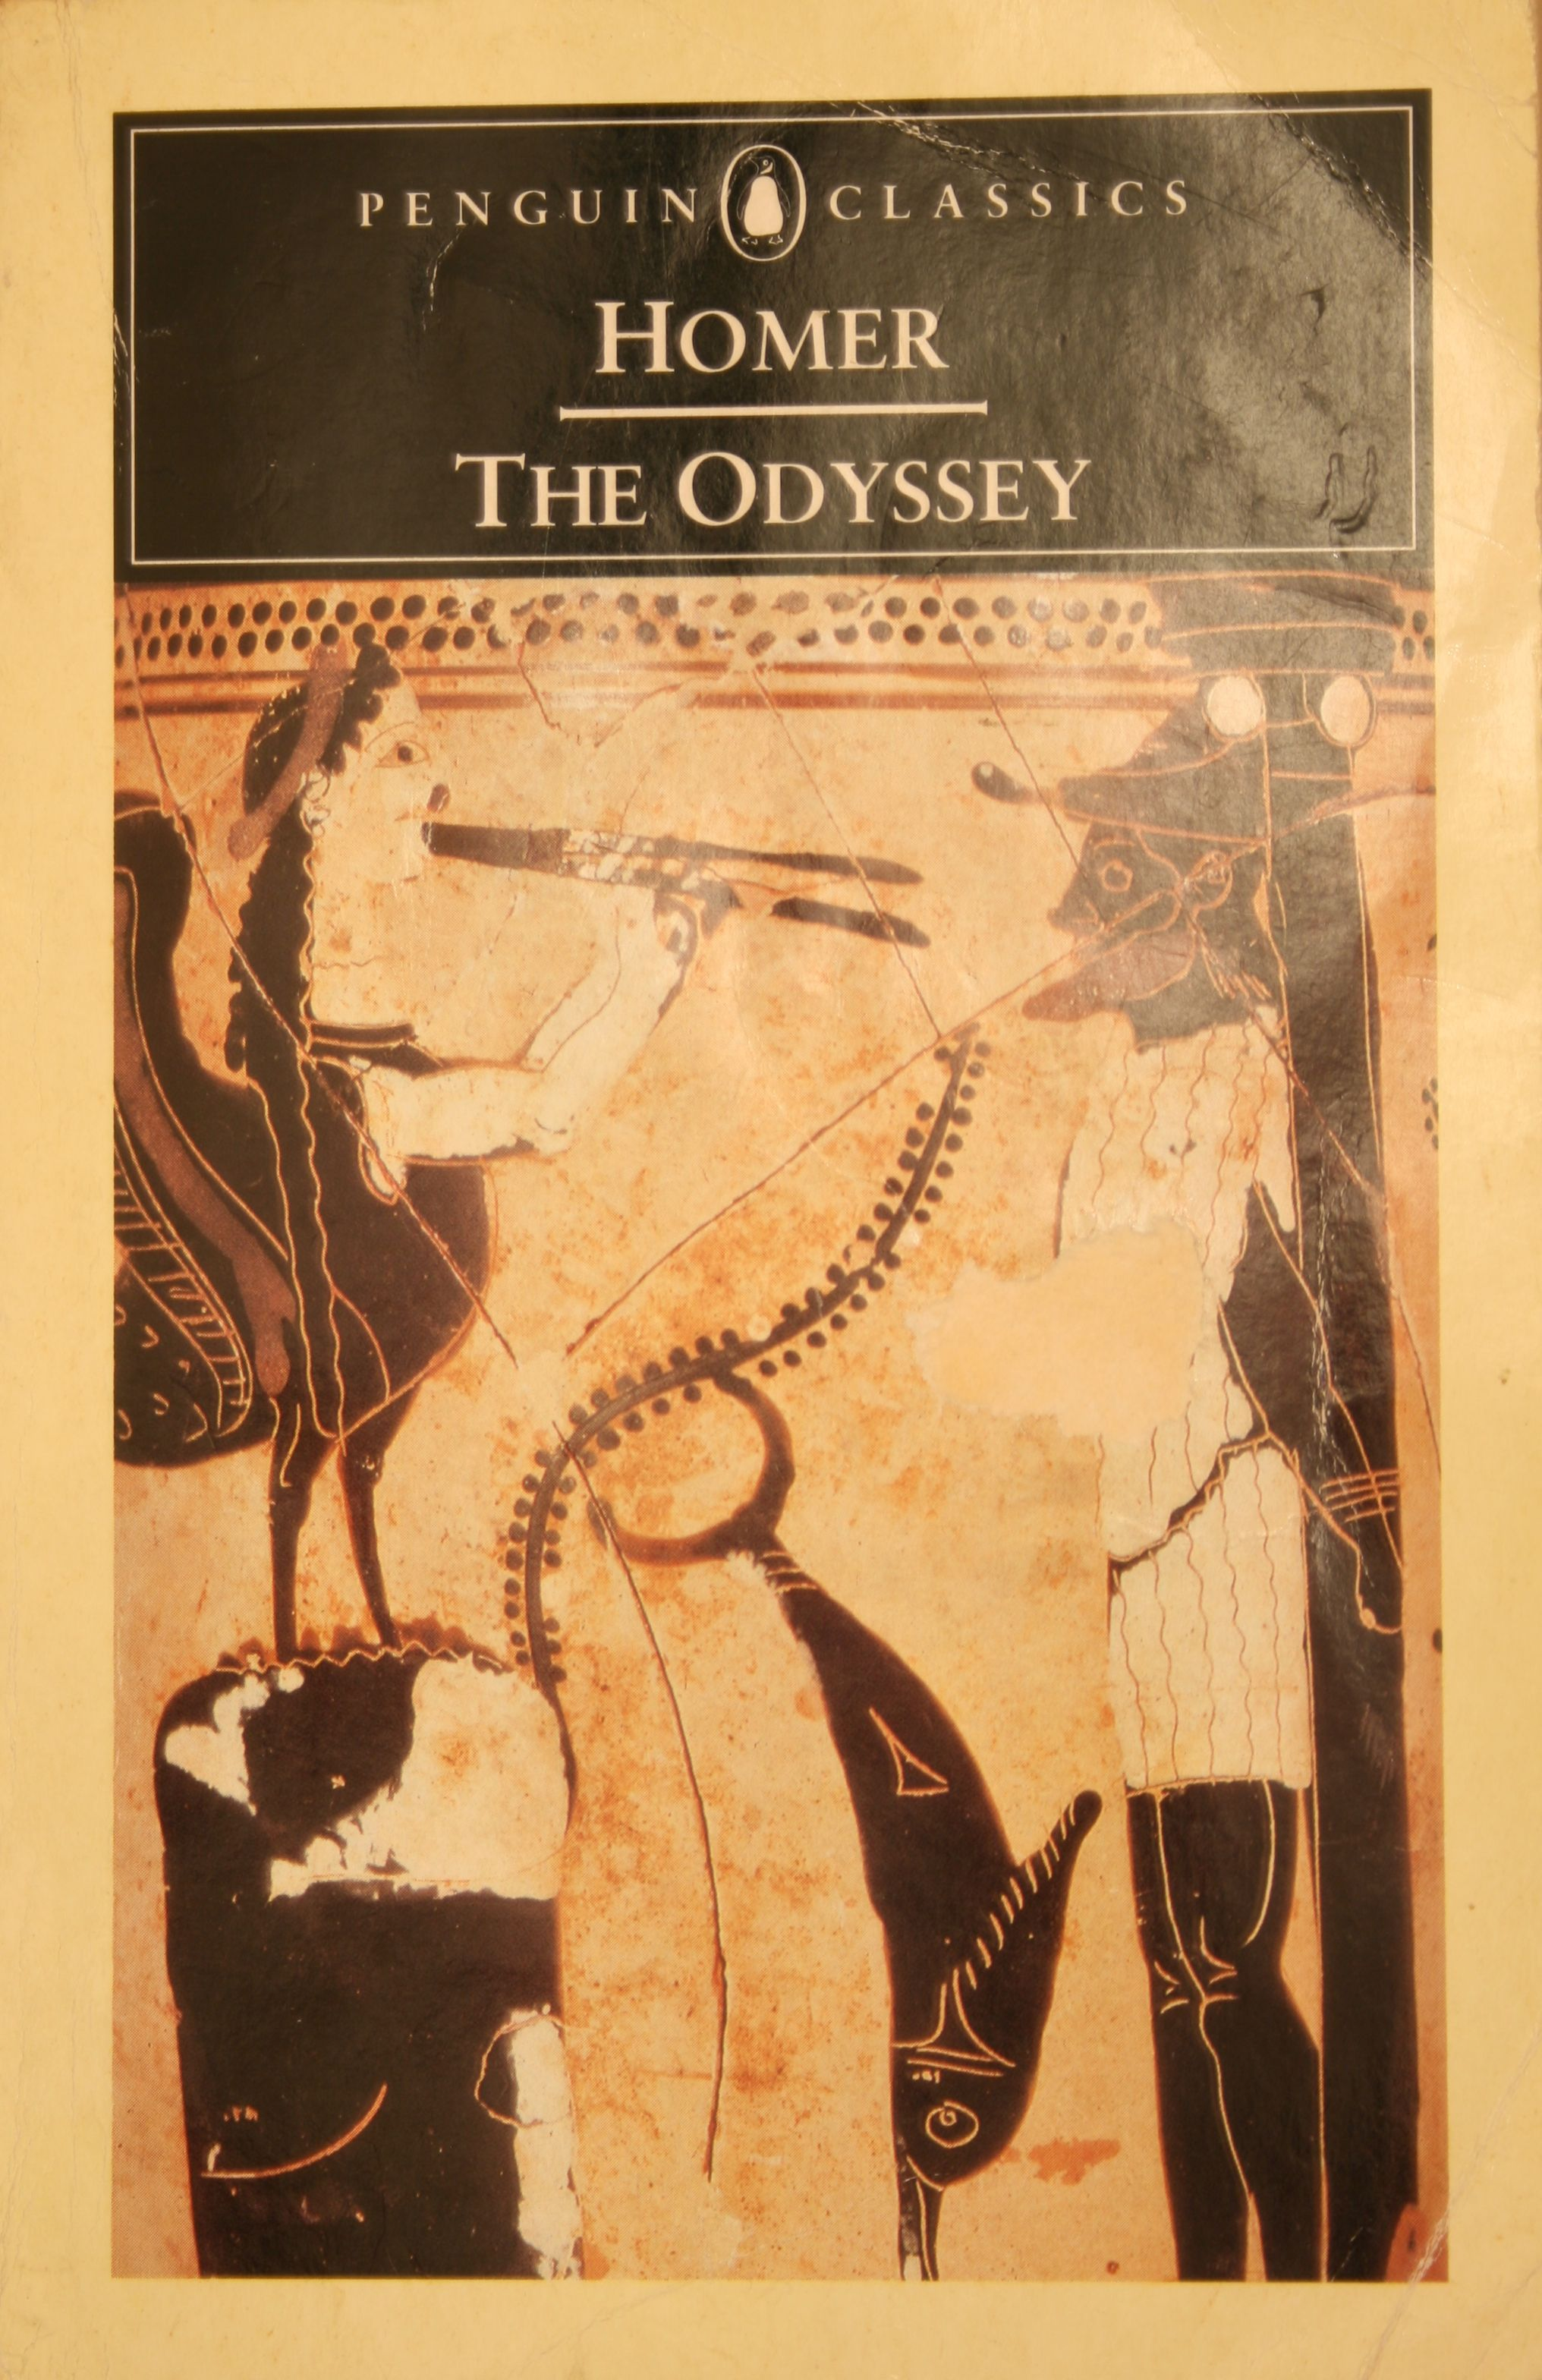 learning temperance in homers odyssey Не сейчас месяц бесплатно homer, odyssey a1-27 (in reconstructed ancient greek pronunciation) many were the men whose cities he saw and whose mind he learned, aye, and many the woes he suffered in his heart upon the sea, seeking to win his own life and the return of his.